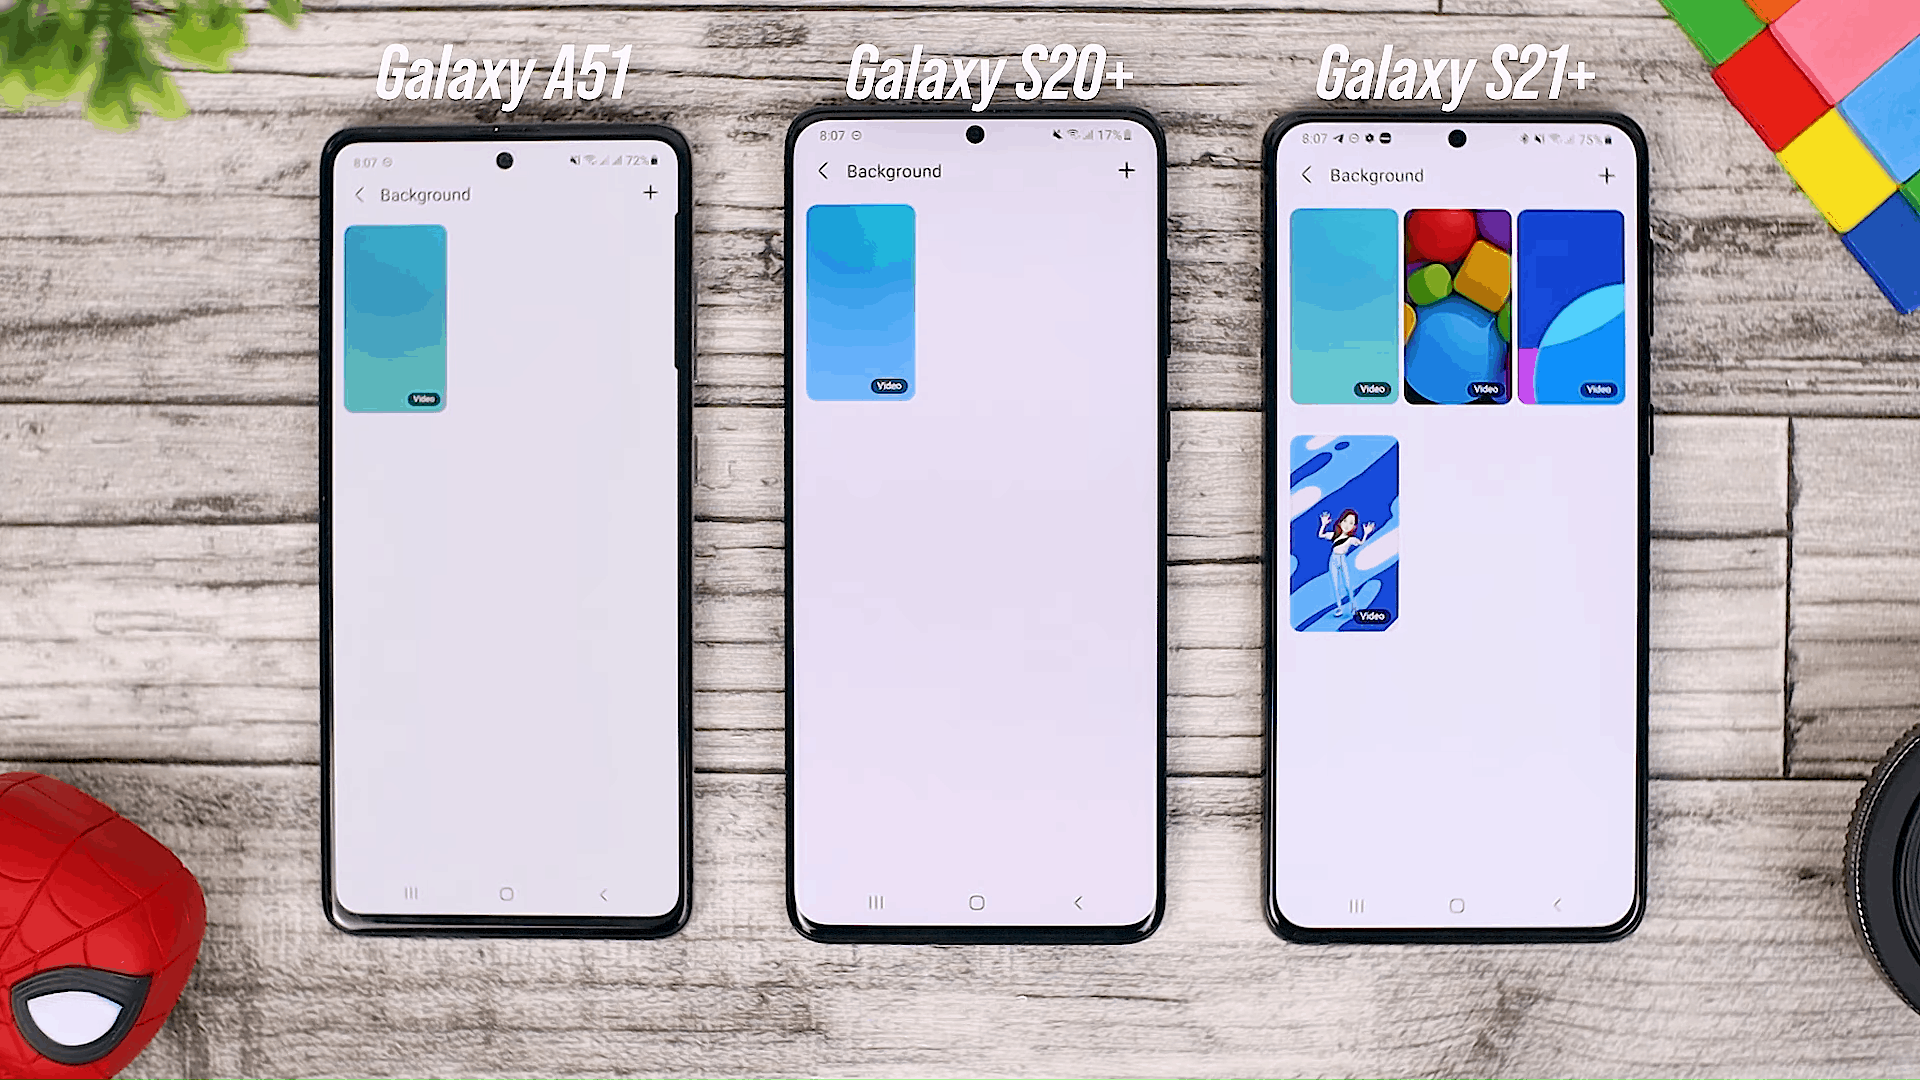 Call Background Option - Fitur One UI 3.0 di Galaxy A51 dan Perbandingannya dengan Galaxy S20+ dan One UI 3.1 di Galaxy S21+